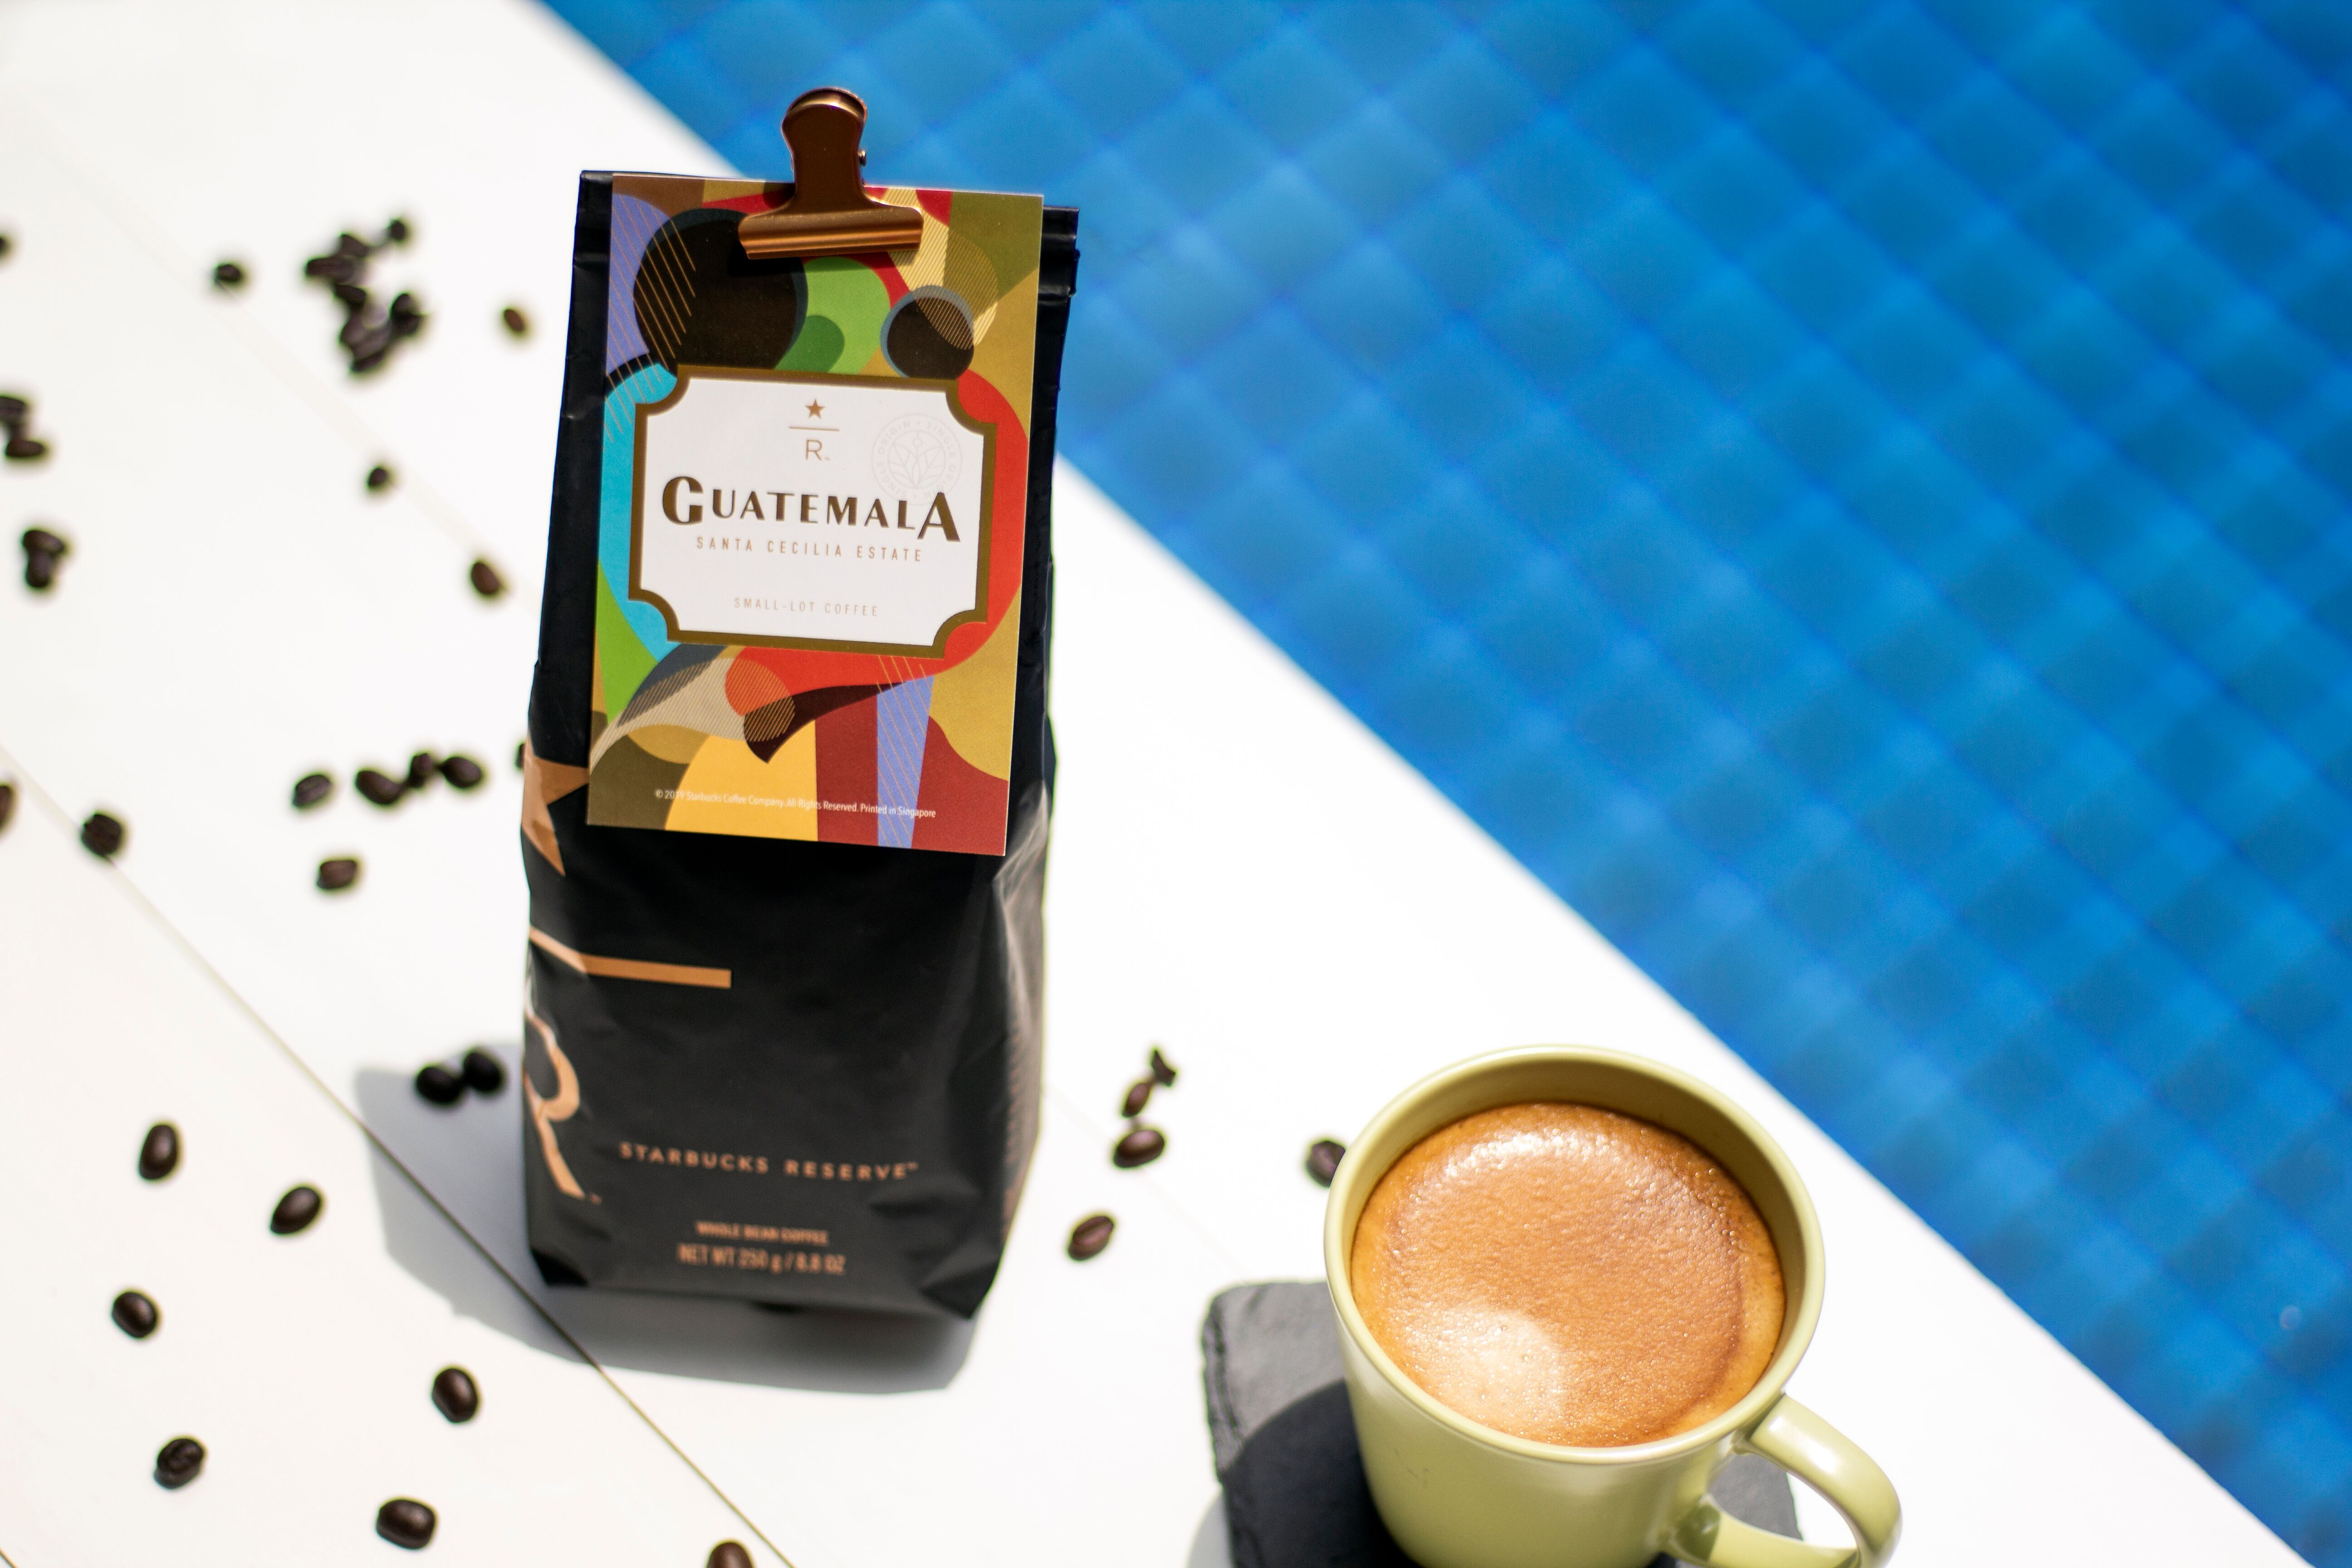 Guatemala Santa Cecilia Estate ($28.00/250g), only available at Starbucks Reserve™ stores